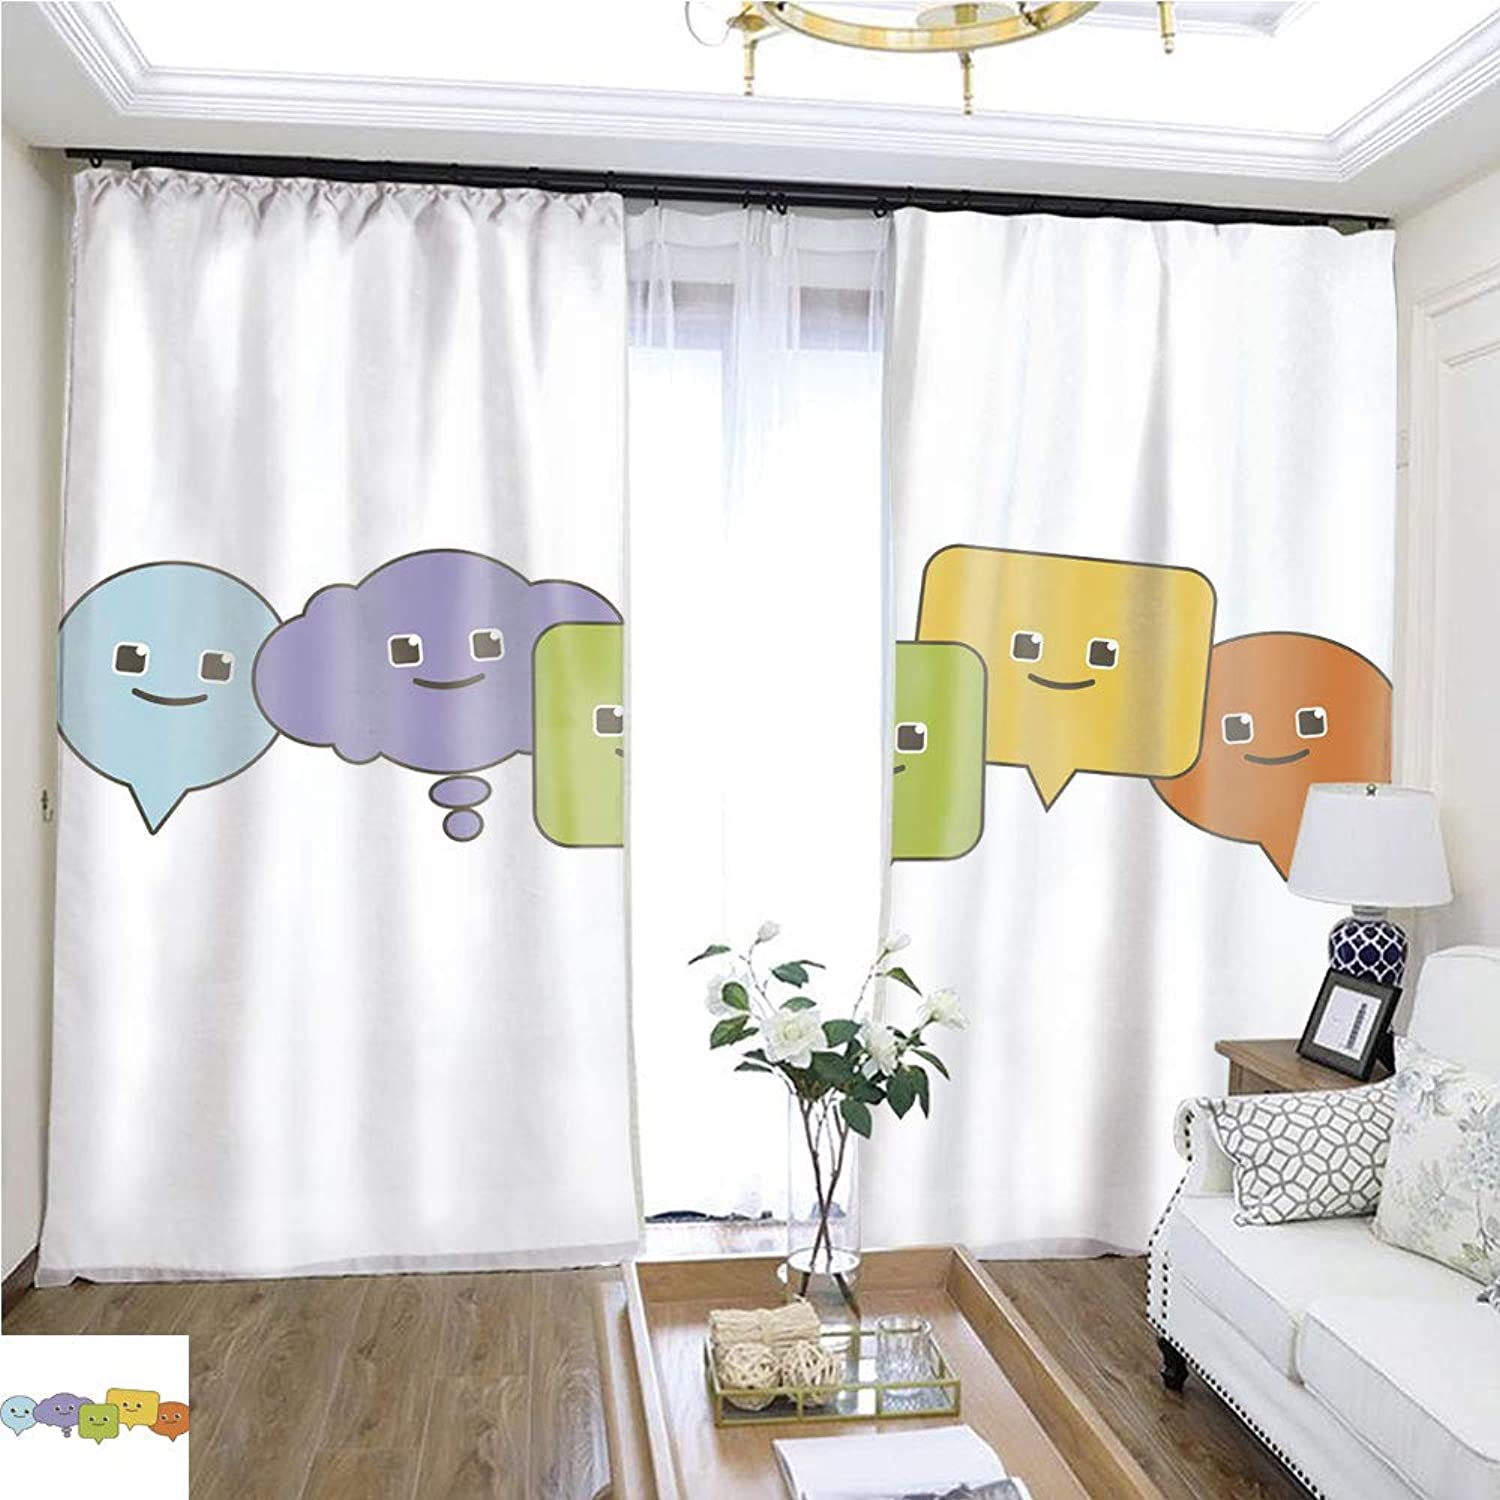 Air Port Screen Cute Speech Bubbles W96 x L288 Block The Sun Highprecision Curtains for bedrooms Living Rooms Kitchens etc.